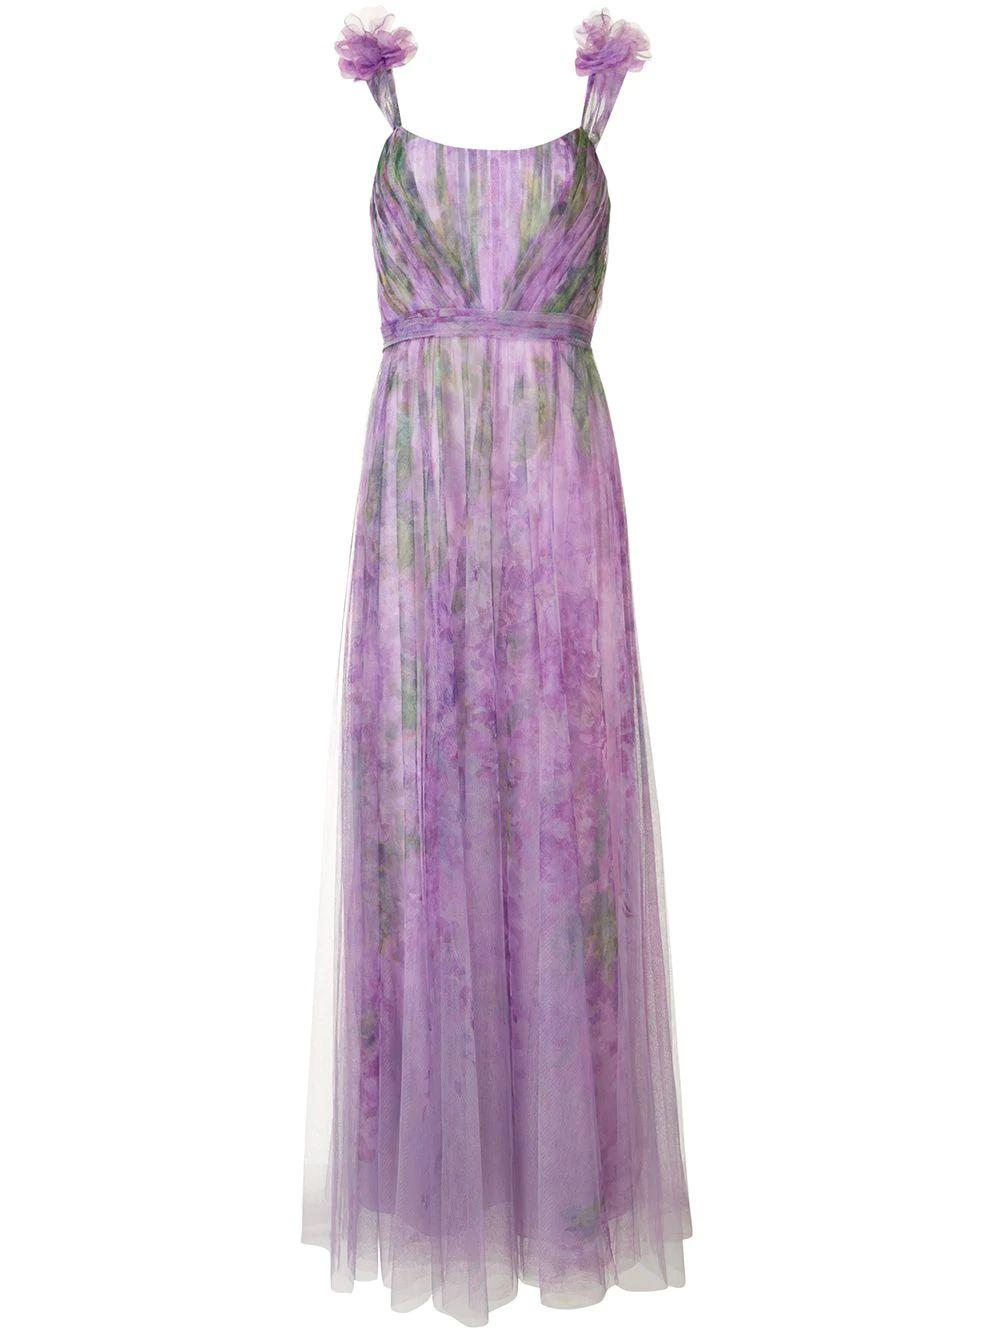 Ots Printed Tulle Gown With 3d Flowers Item # N39G1897